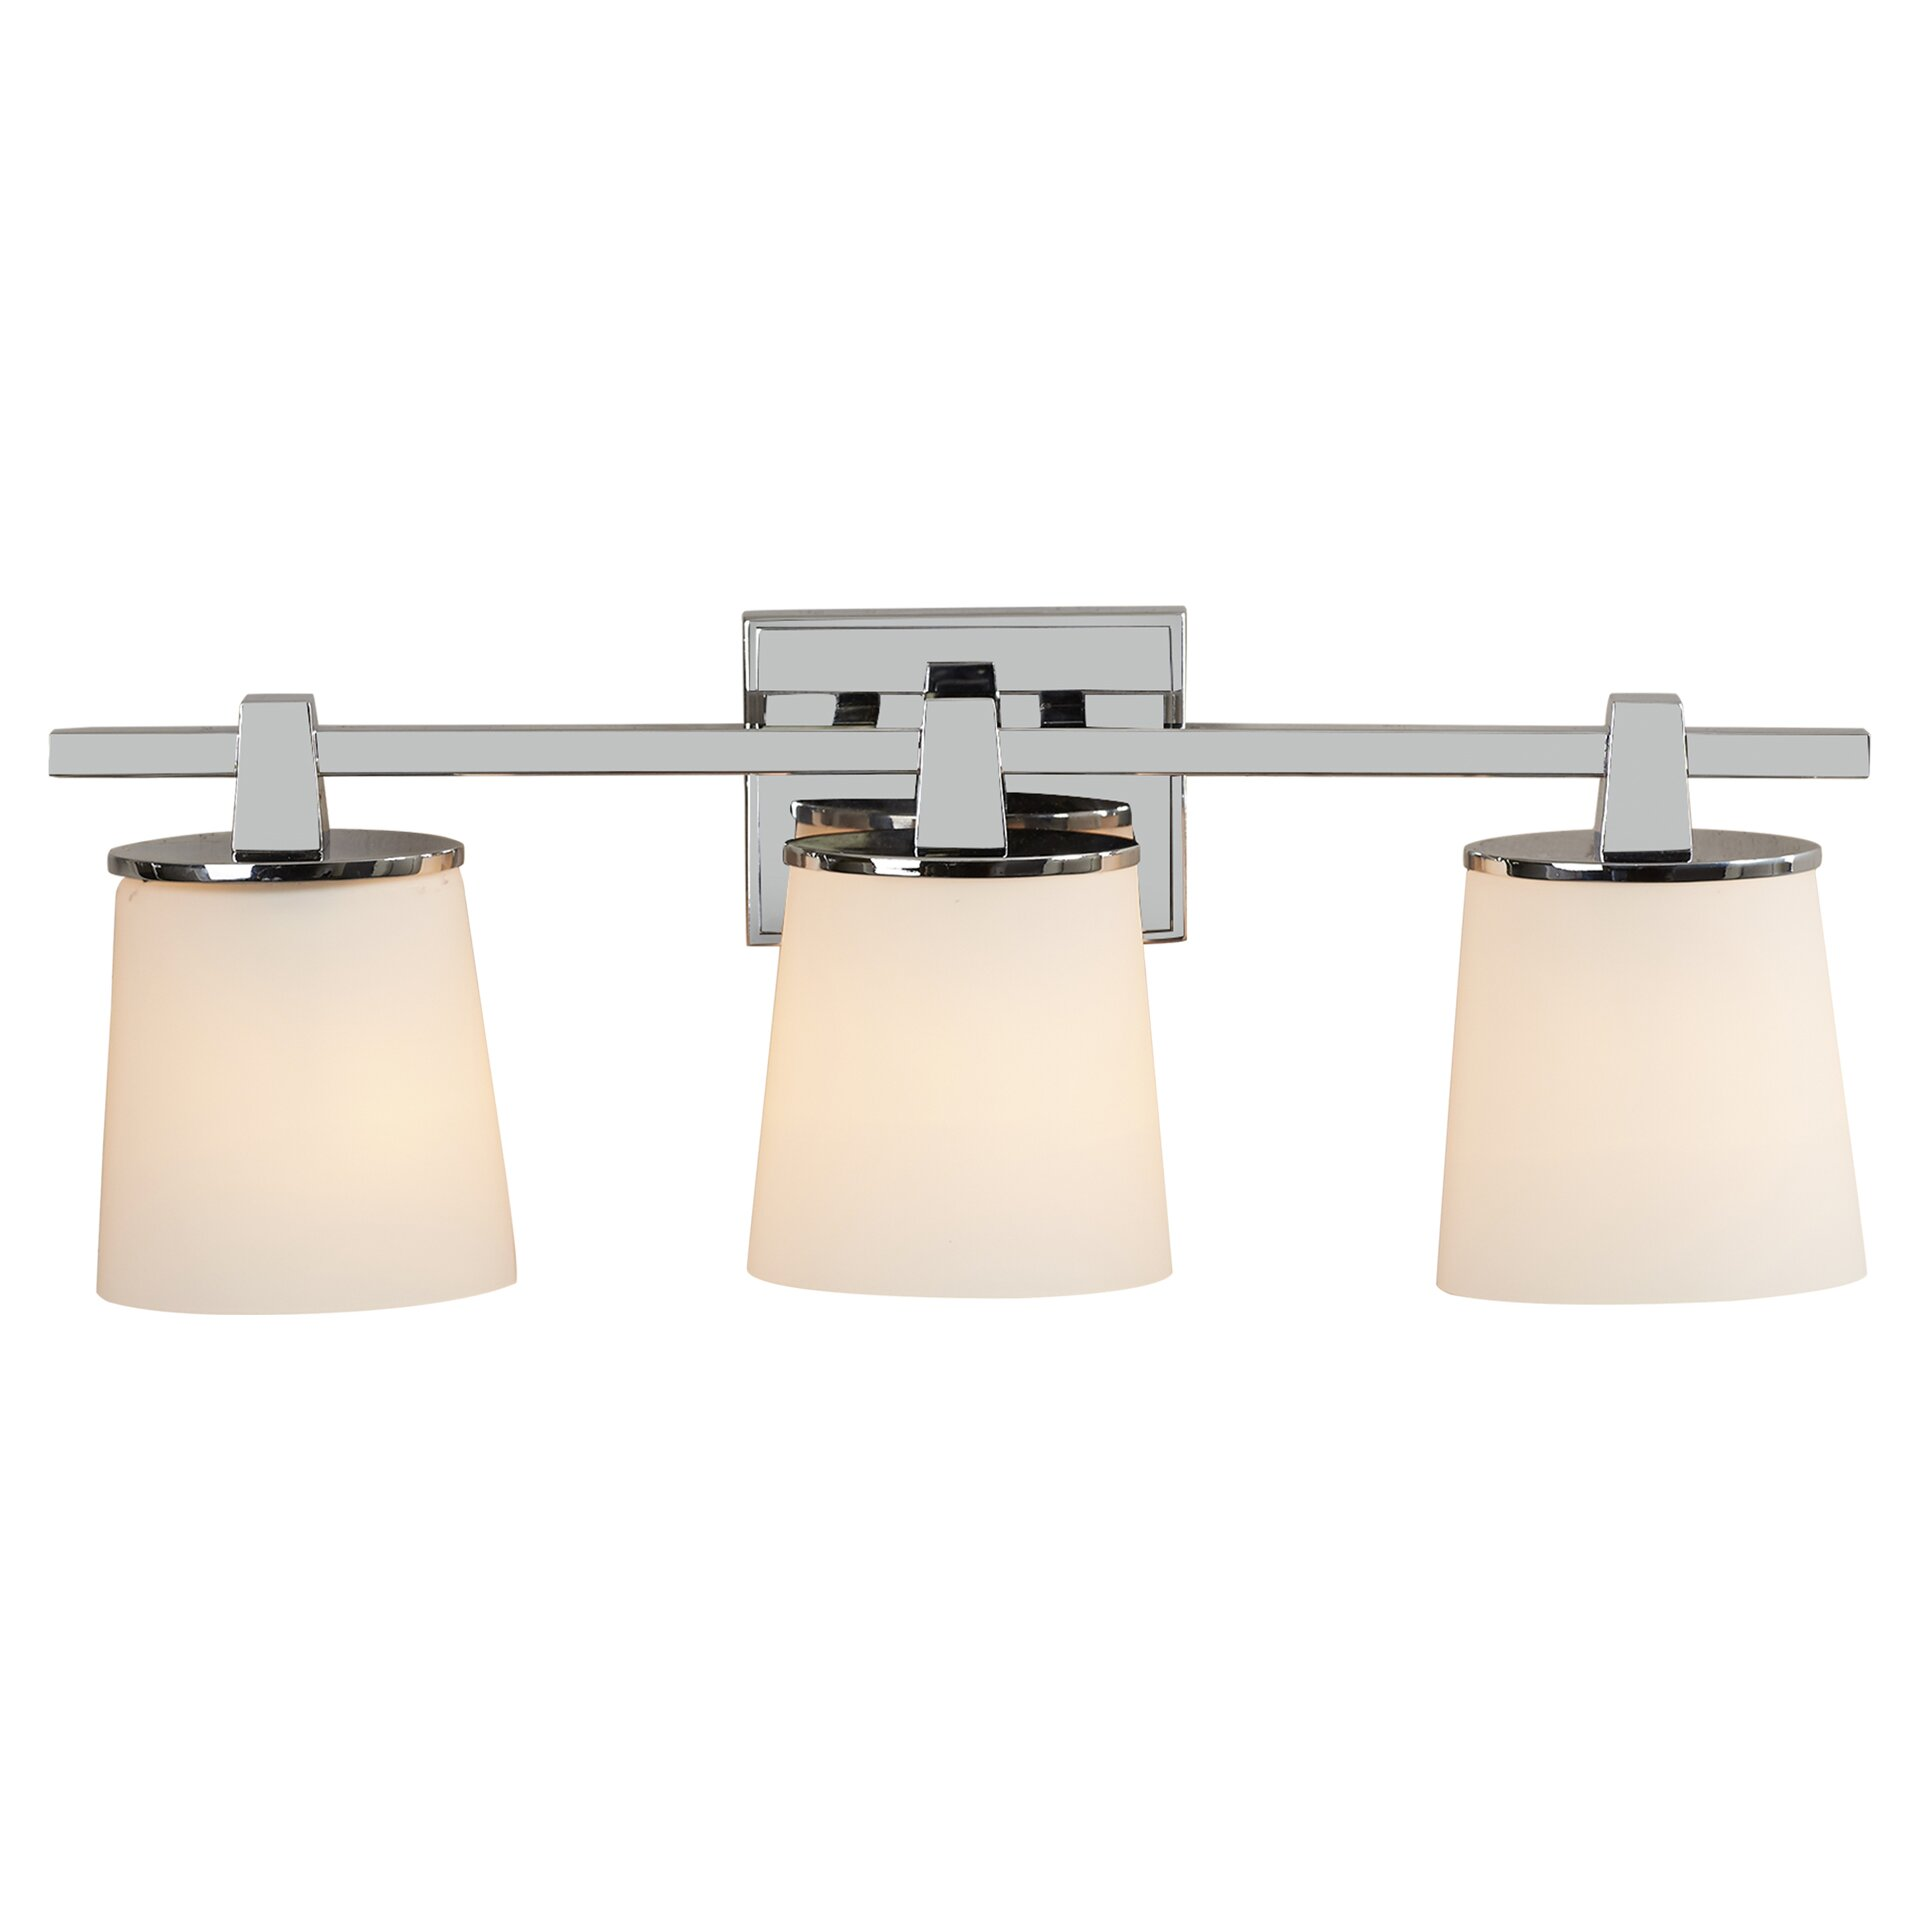 Brayden Studio Dao 3 Light Bath Vanity Light & Reviews